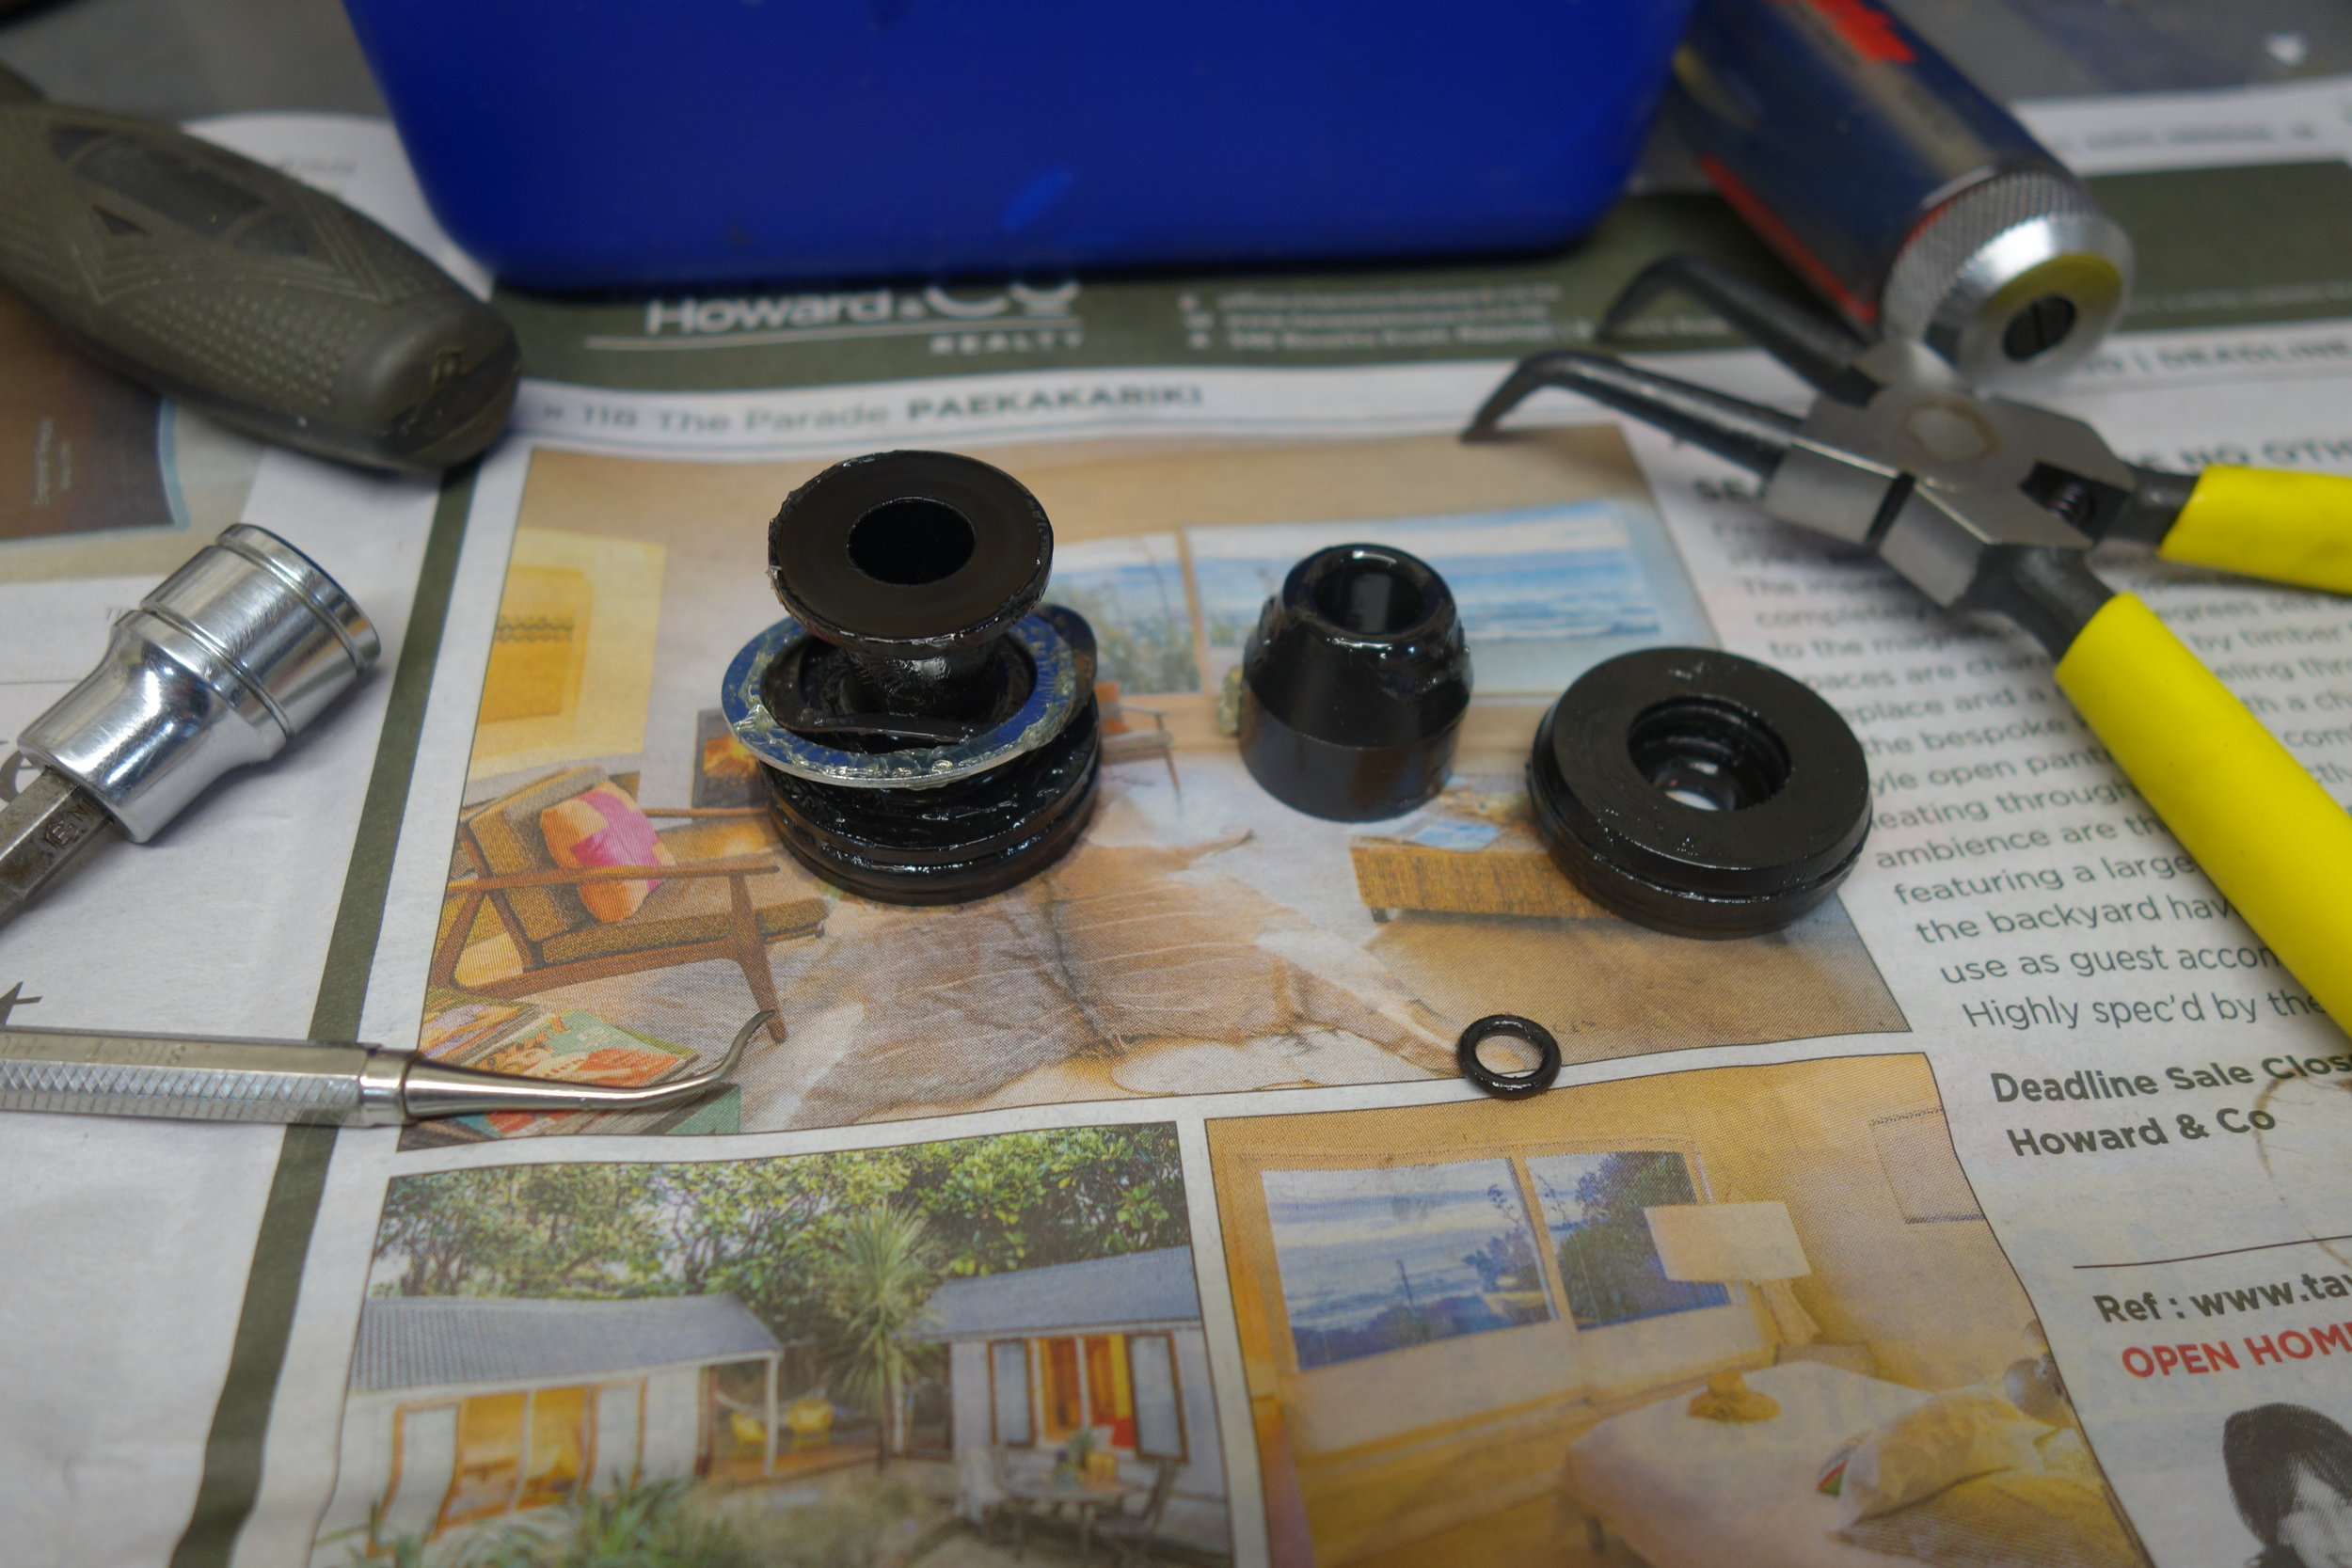 Take off your old sealhead, the Lufkappe has a built in sealhead and all the o-rings to replace your existing old ones